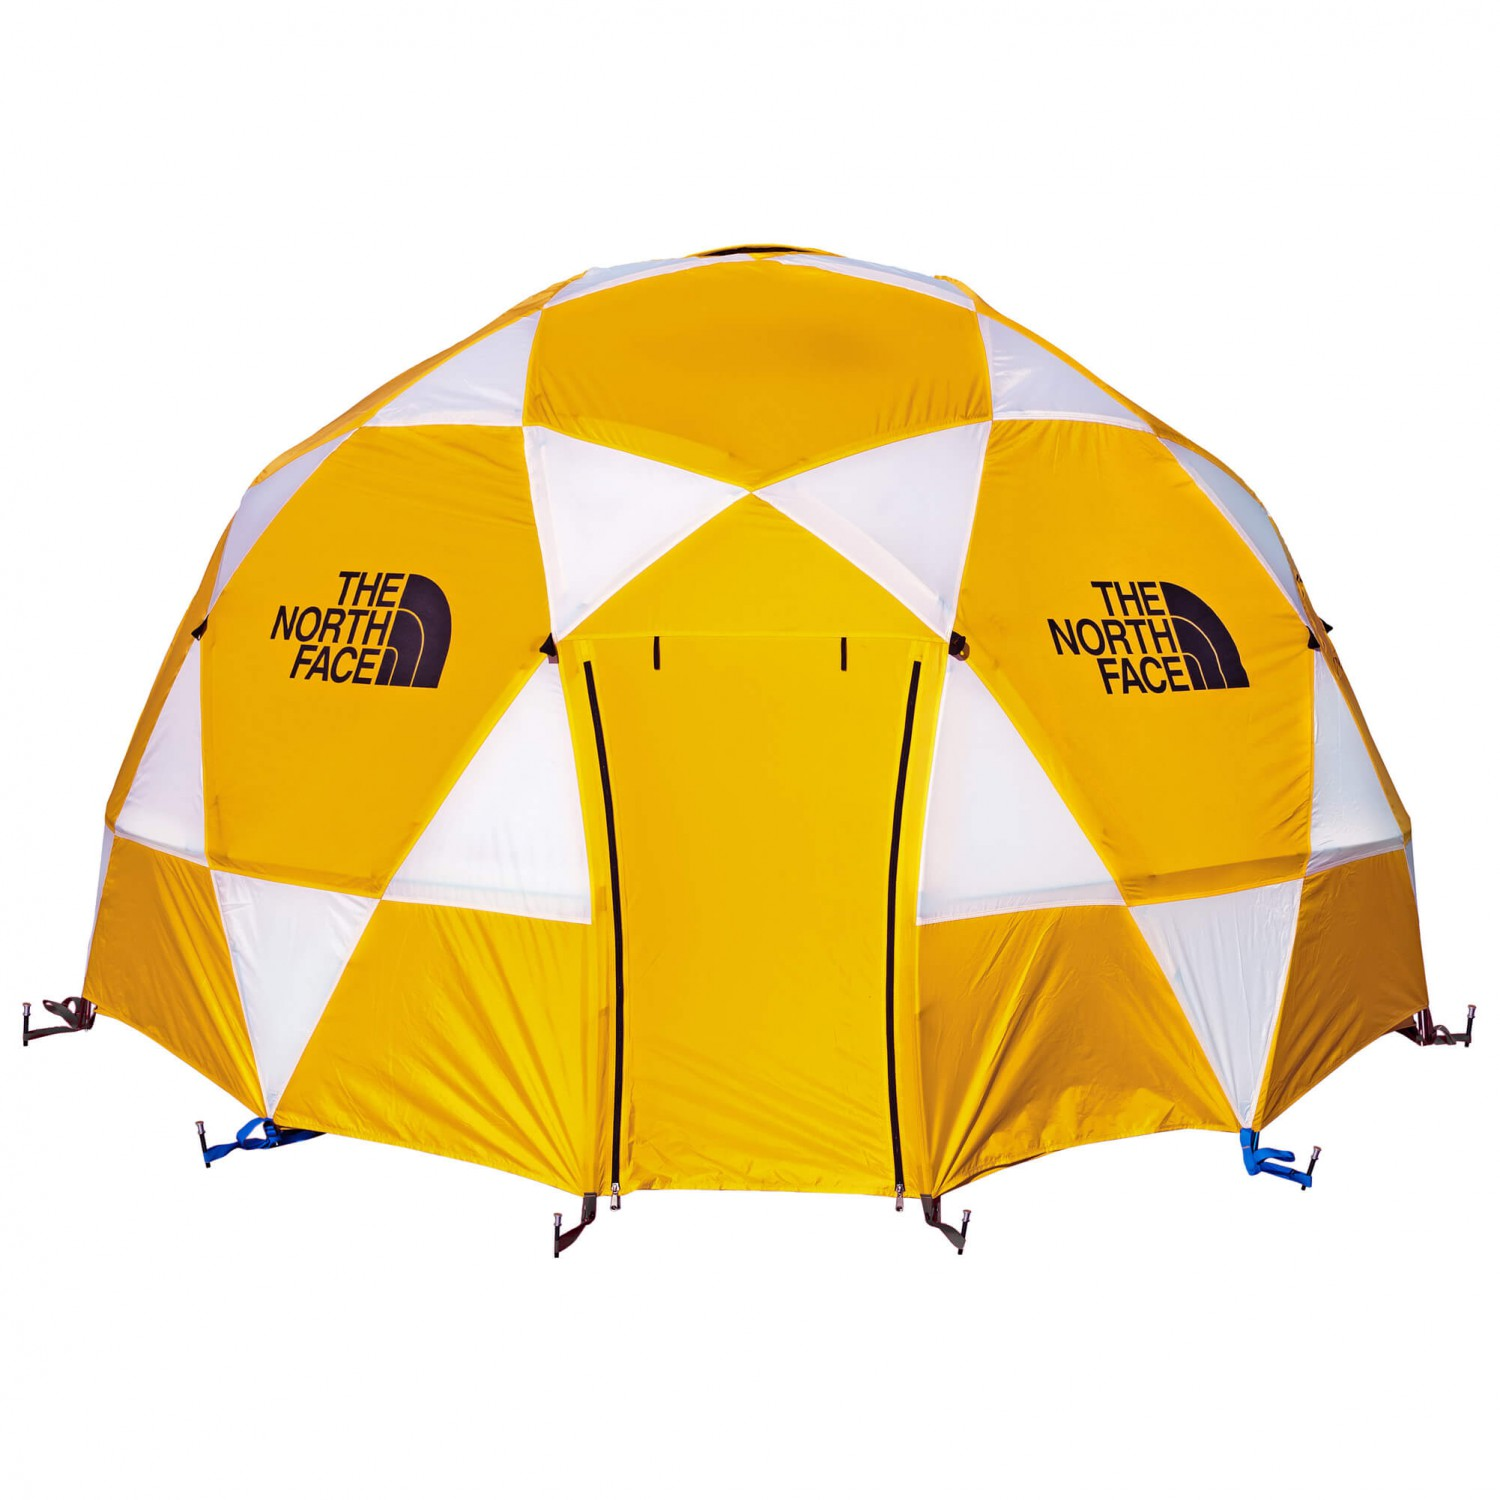 The North Face - 2-Meter Dome - 8-Personen-Expeditionszelt ...  sc 1 st  Alpinetrek & The North Face 2-Meter Dome - 8-Personen-Expeditionszelt | Free UK ...